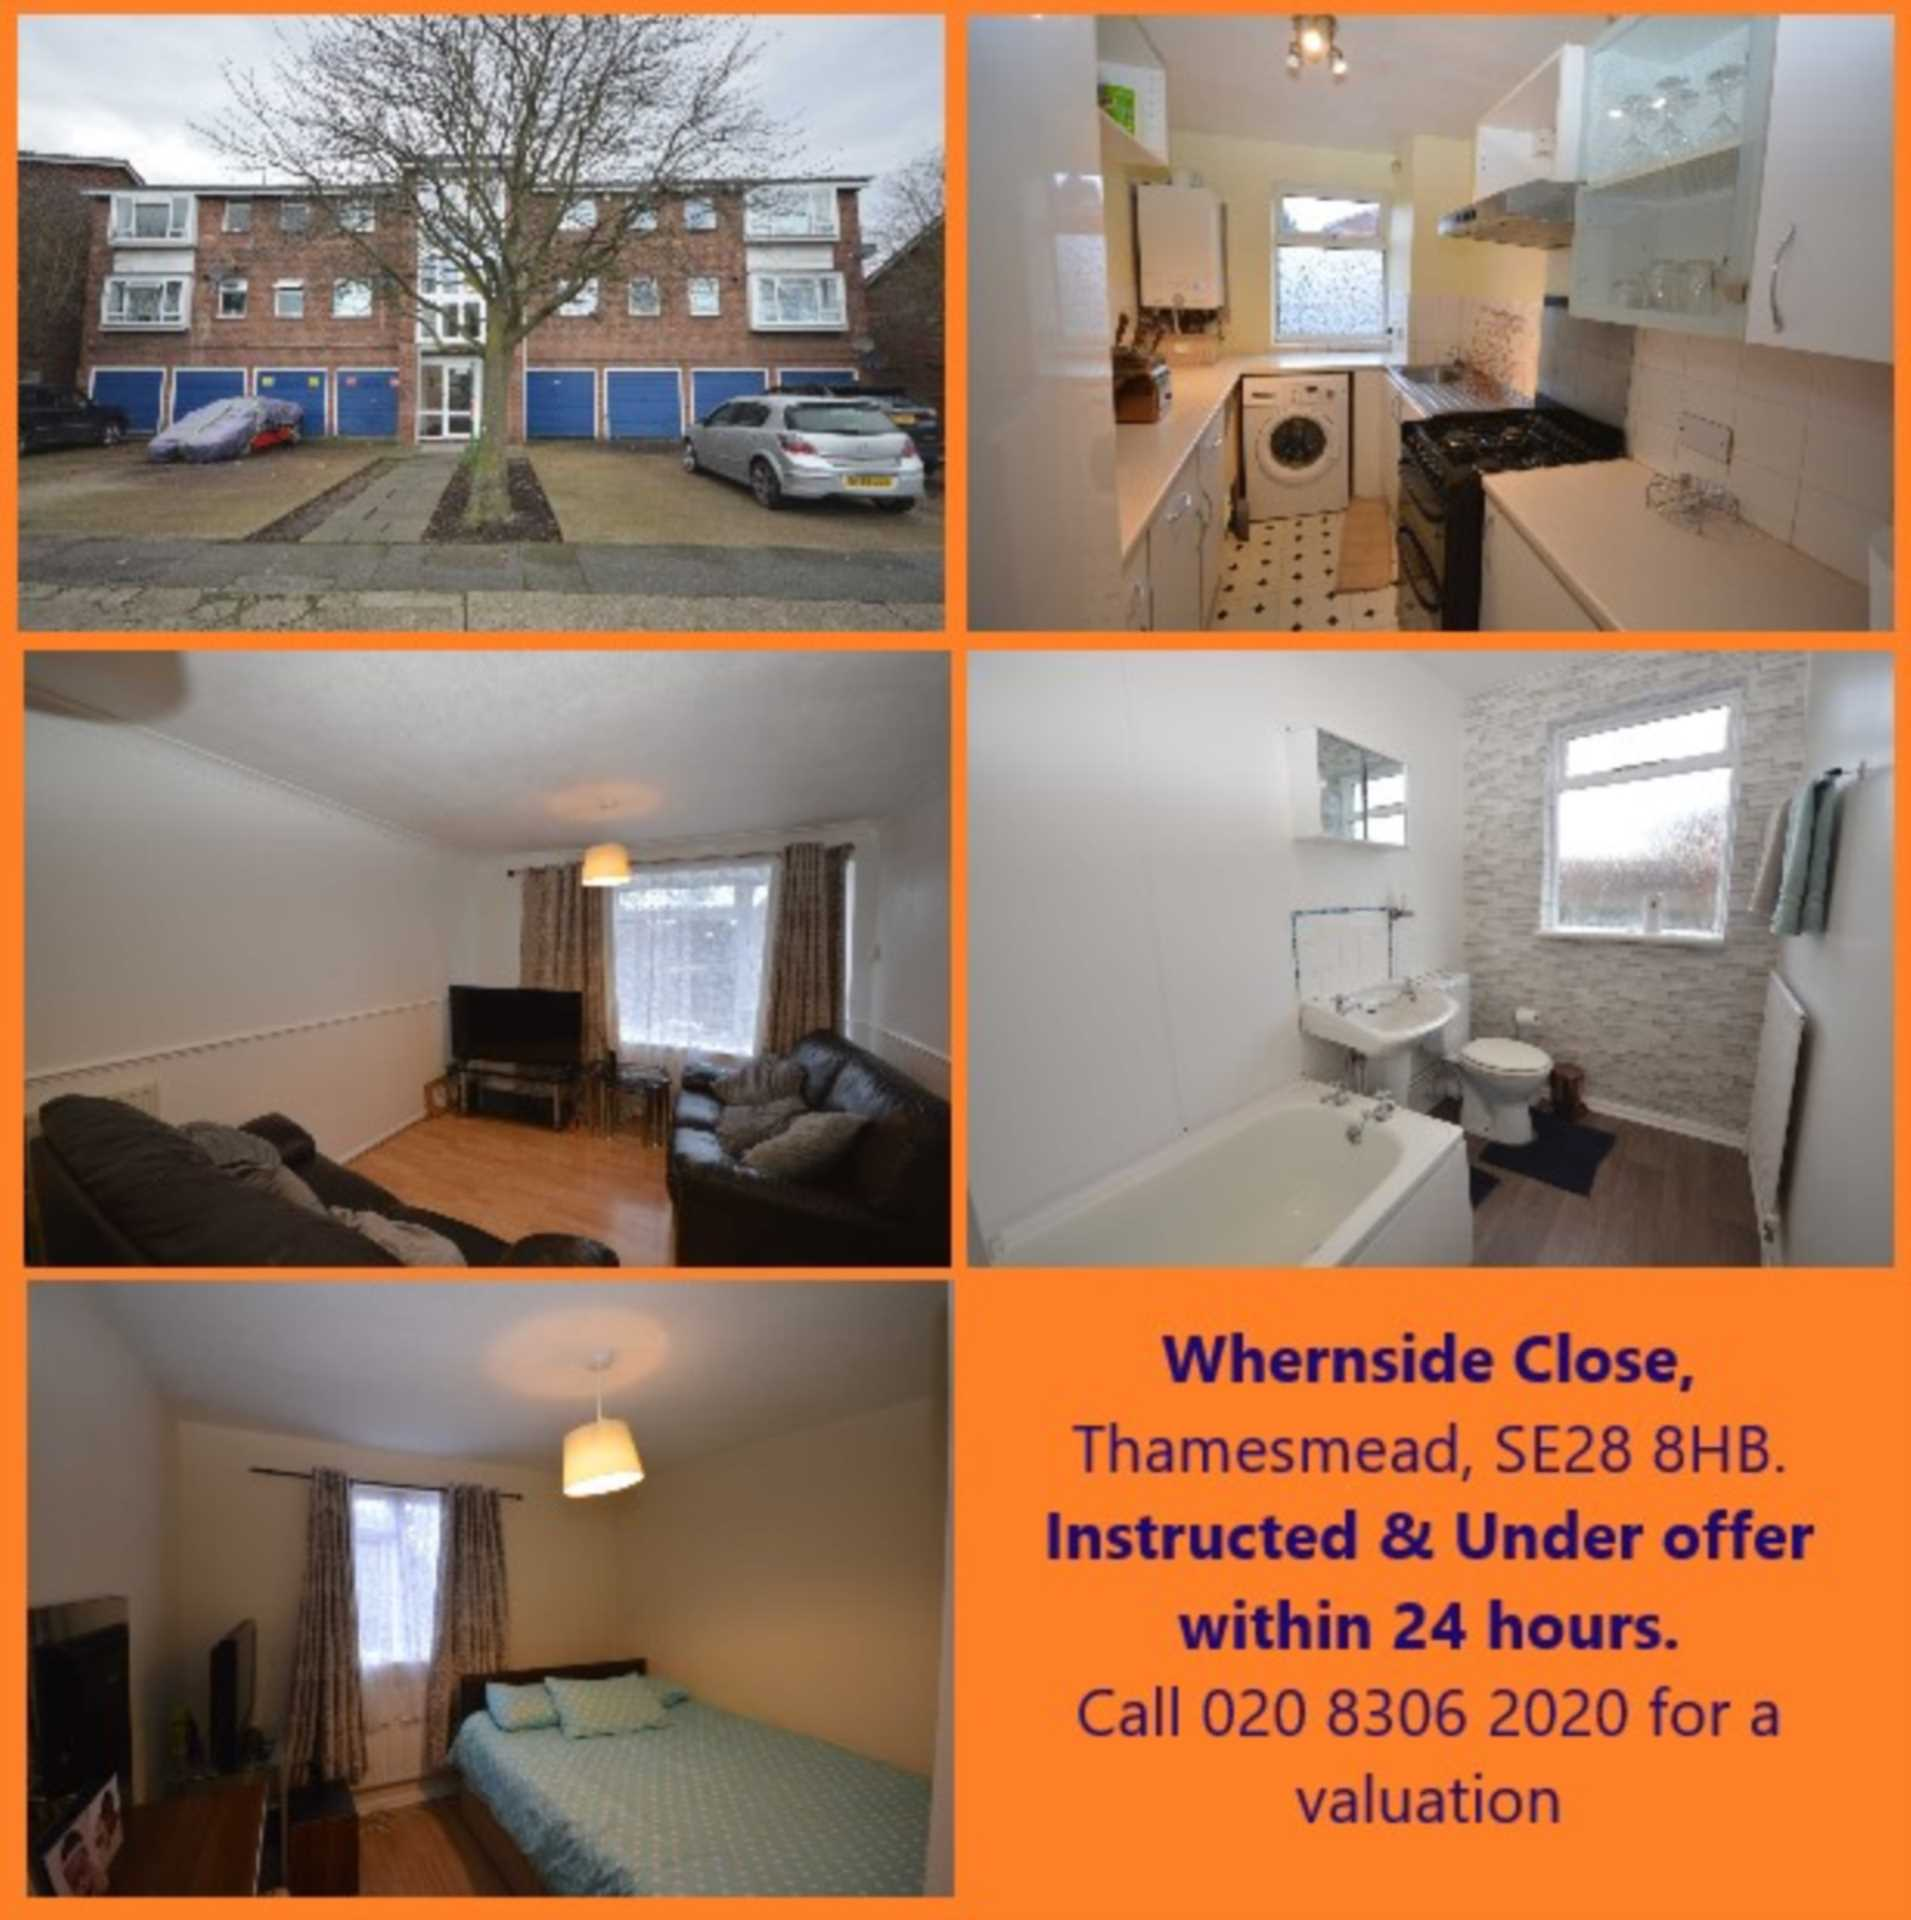 Under offer within 24 hours! Thamesmead SE28